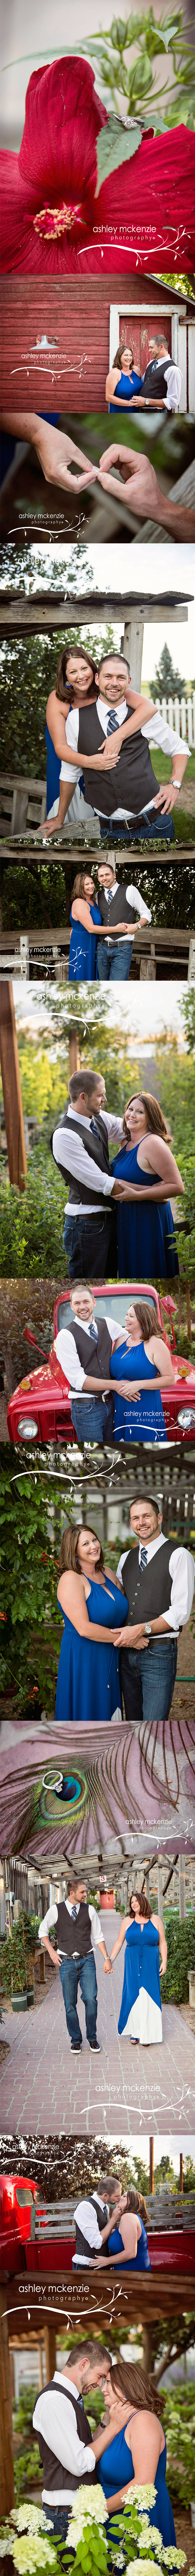 Engagement Photography By Ashley McKenzie Photography in Northern Colorado